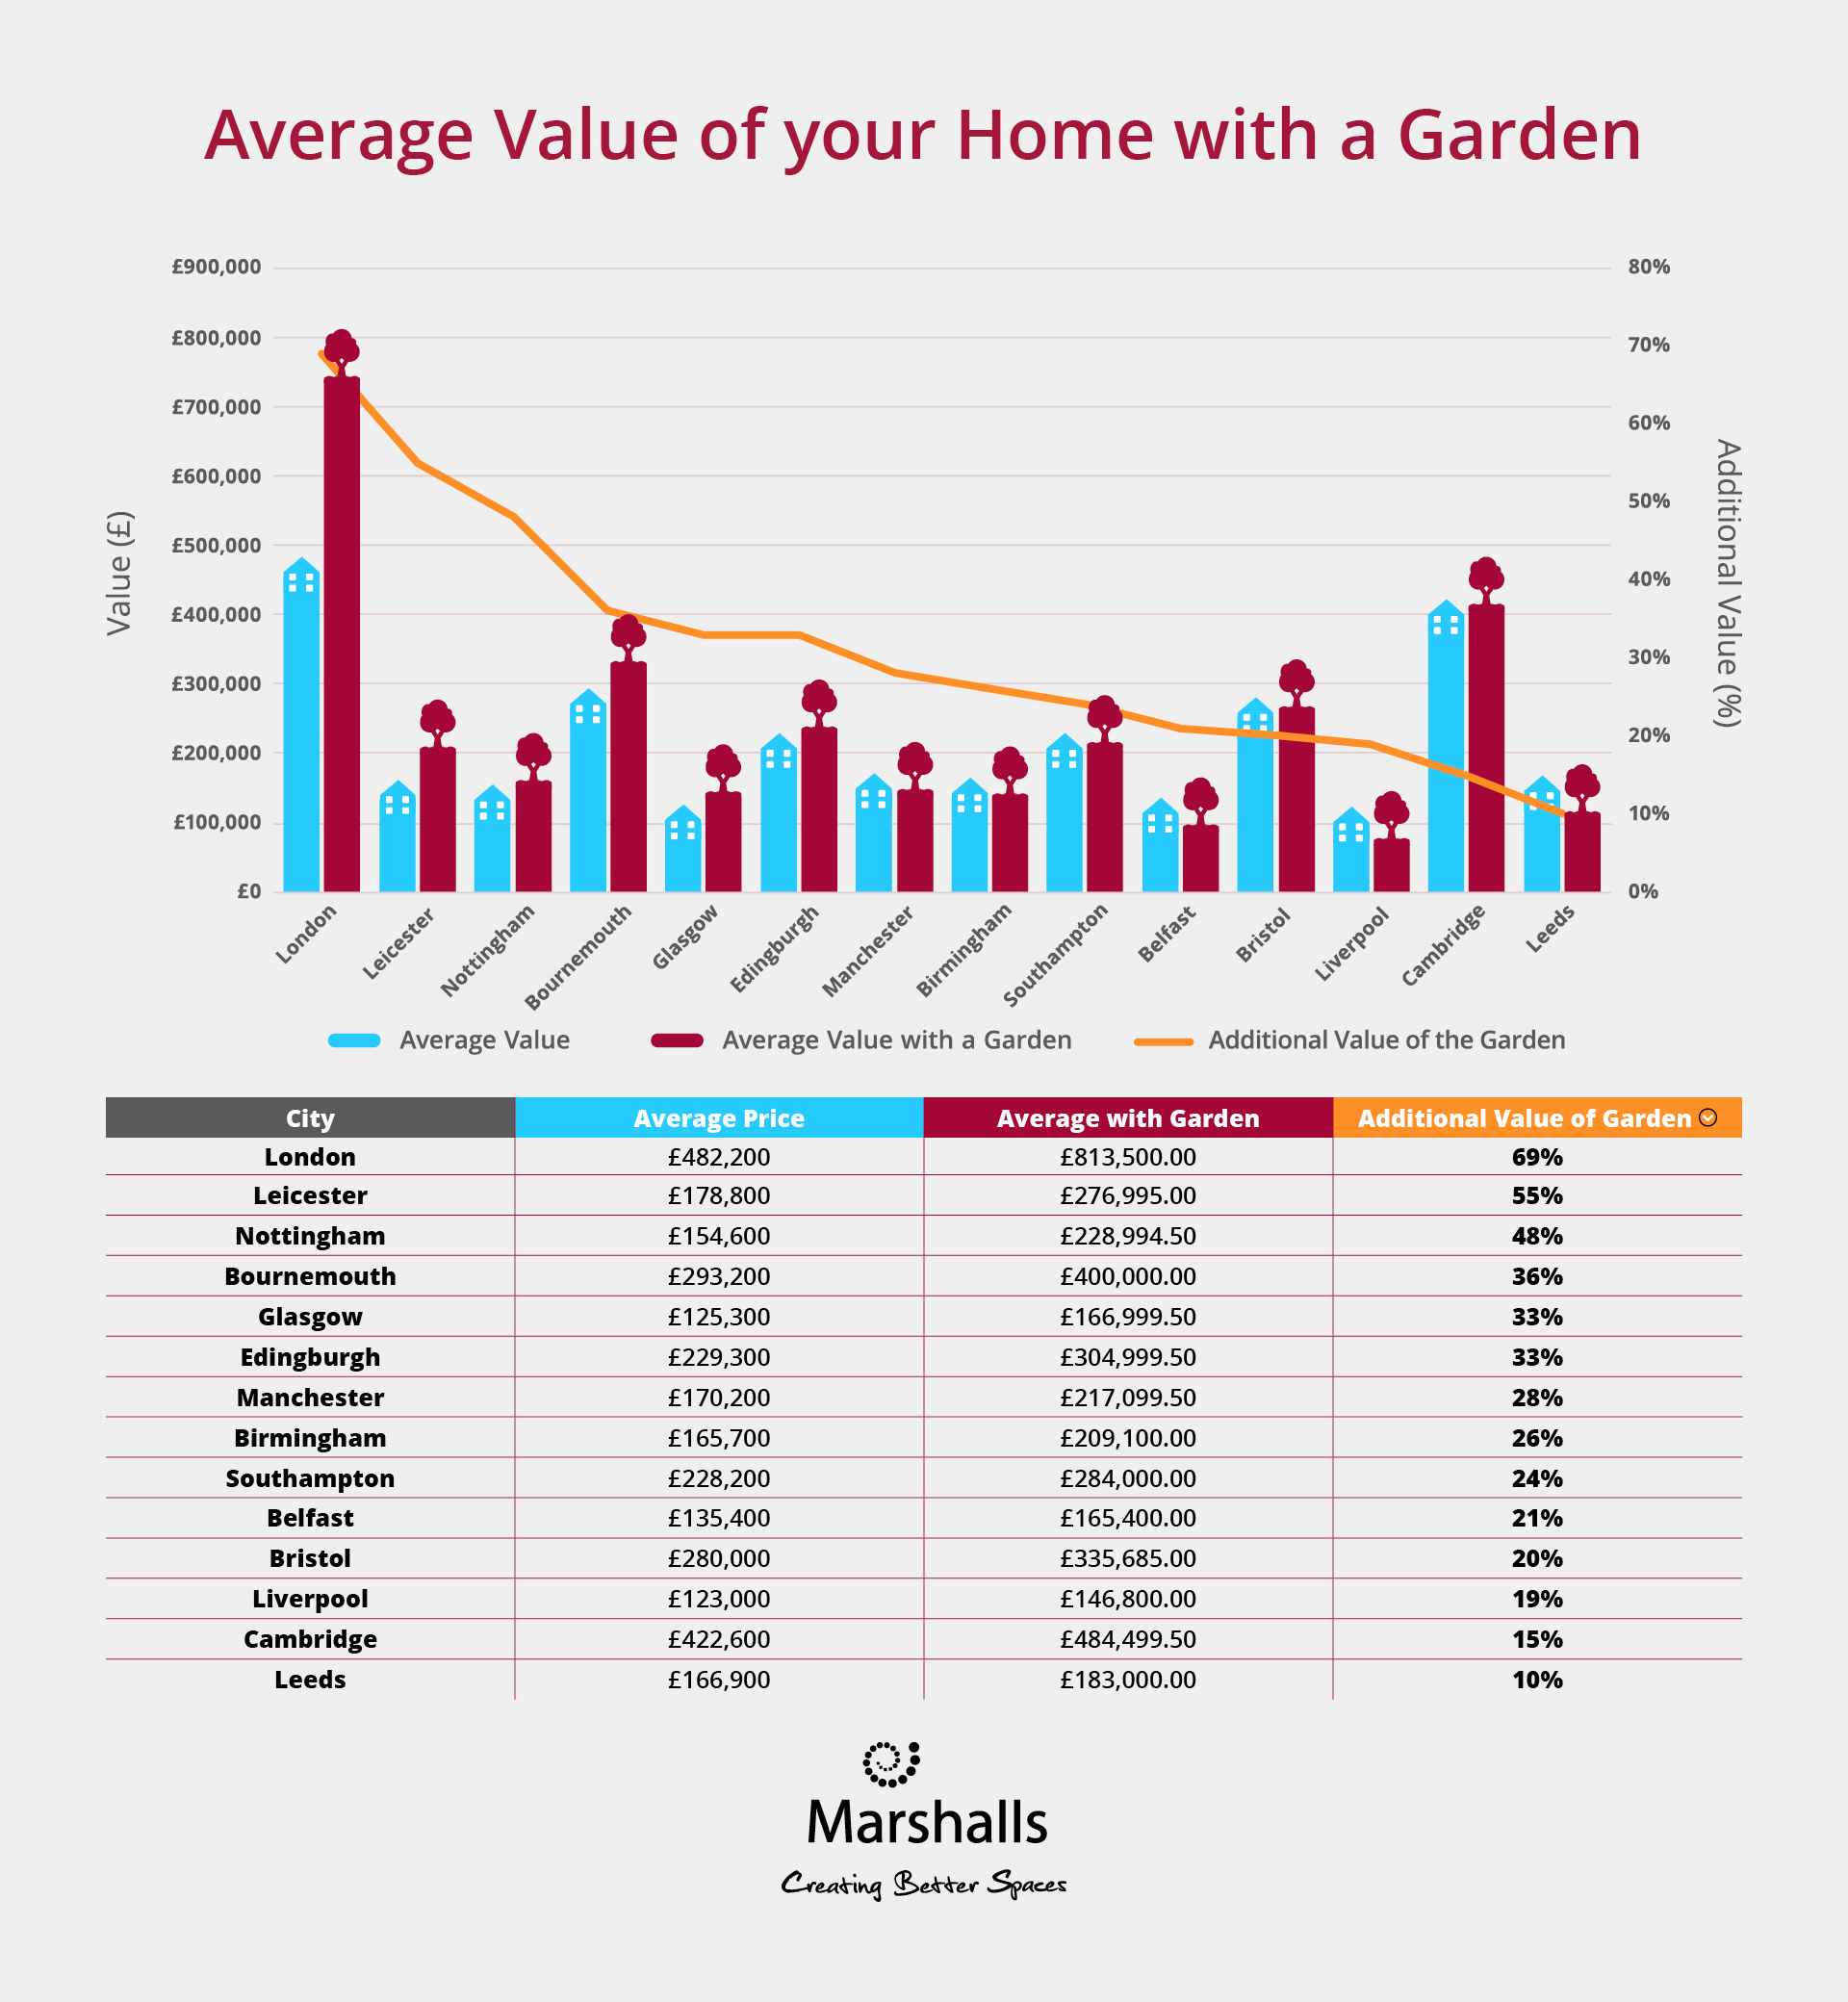 Marshalls infographic on the average value of your home with a garden.